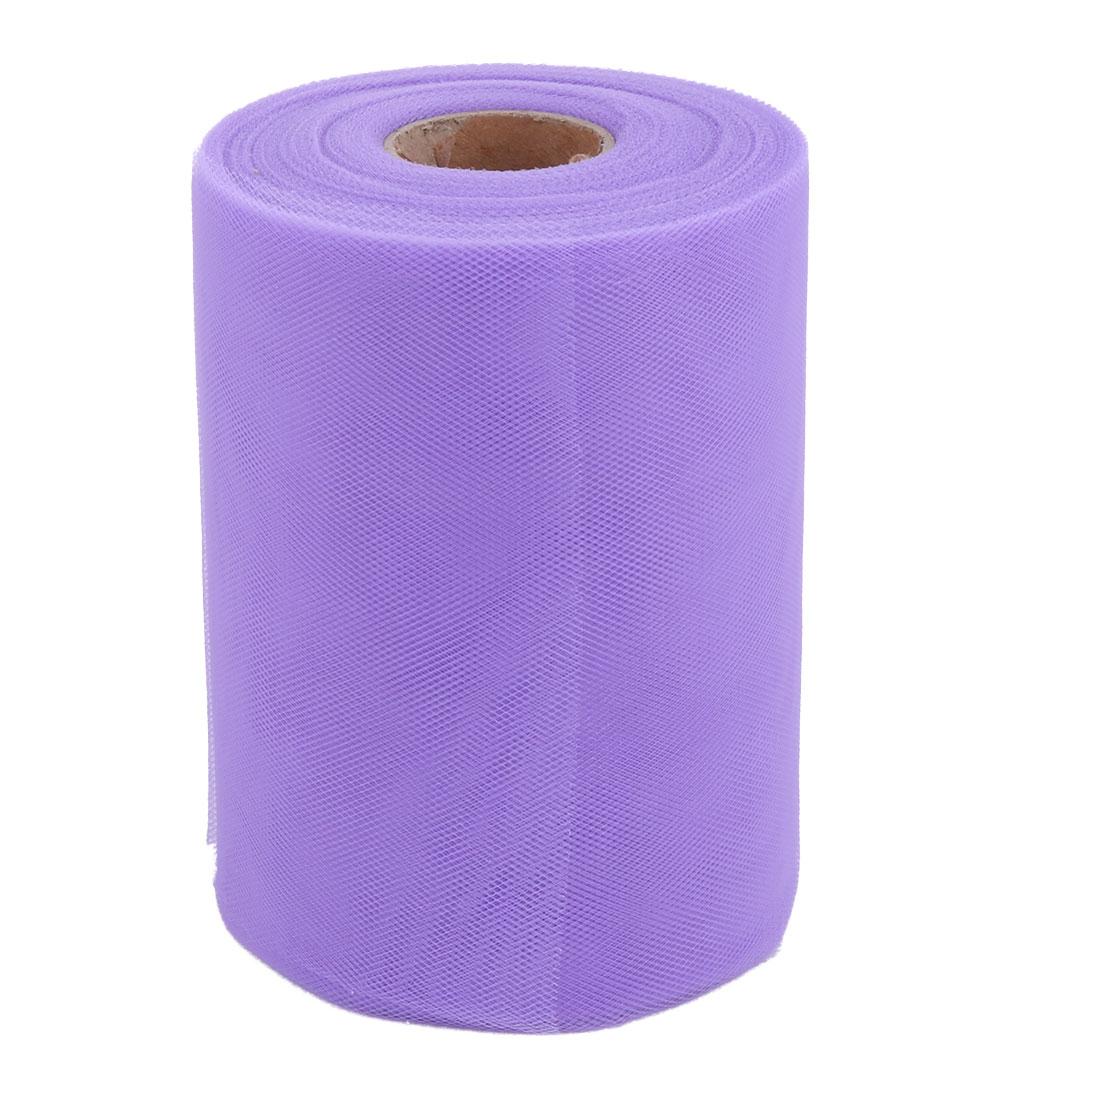 Party Gift Wrap DIY Dress Craft Tulle Spool Roll Light Purple 6 Inch x 100 Yards